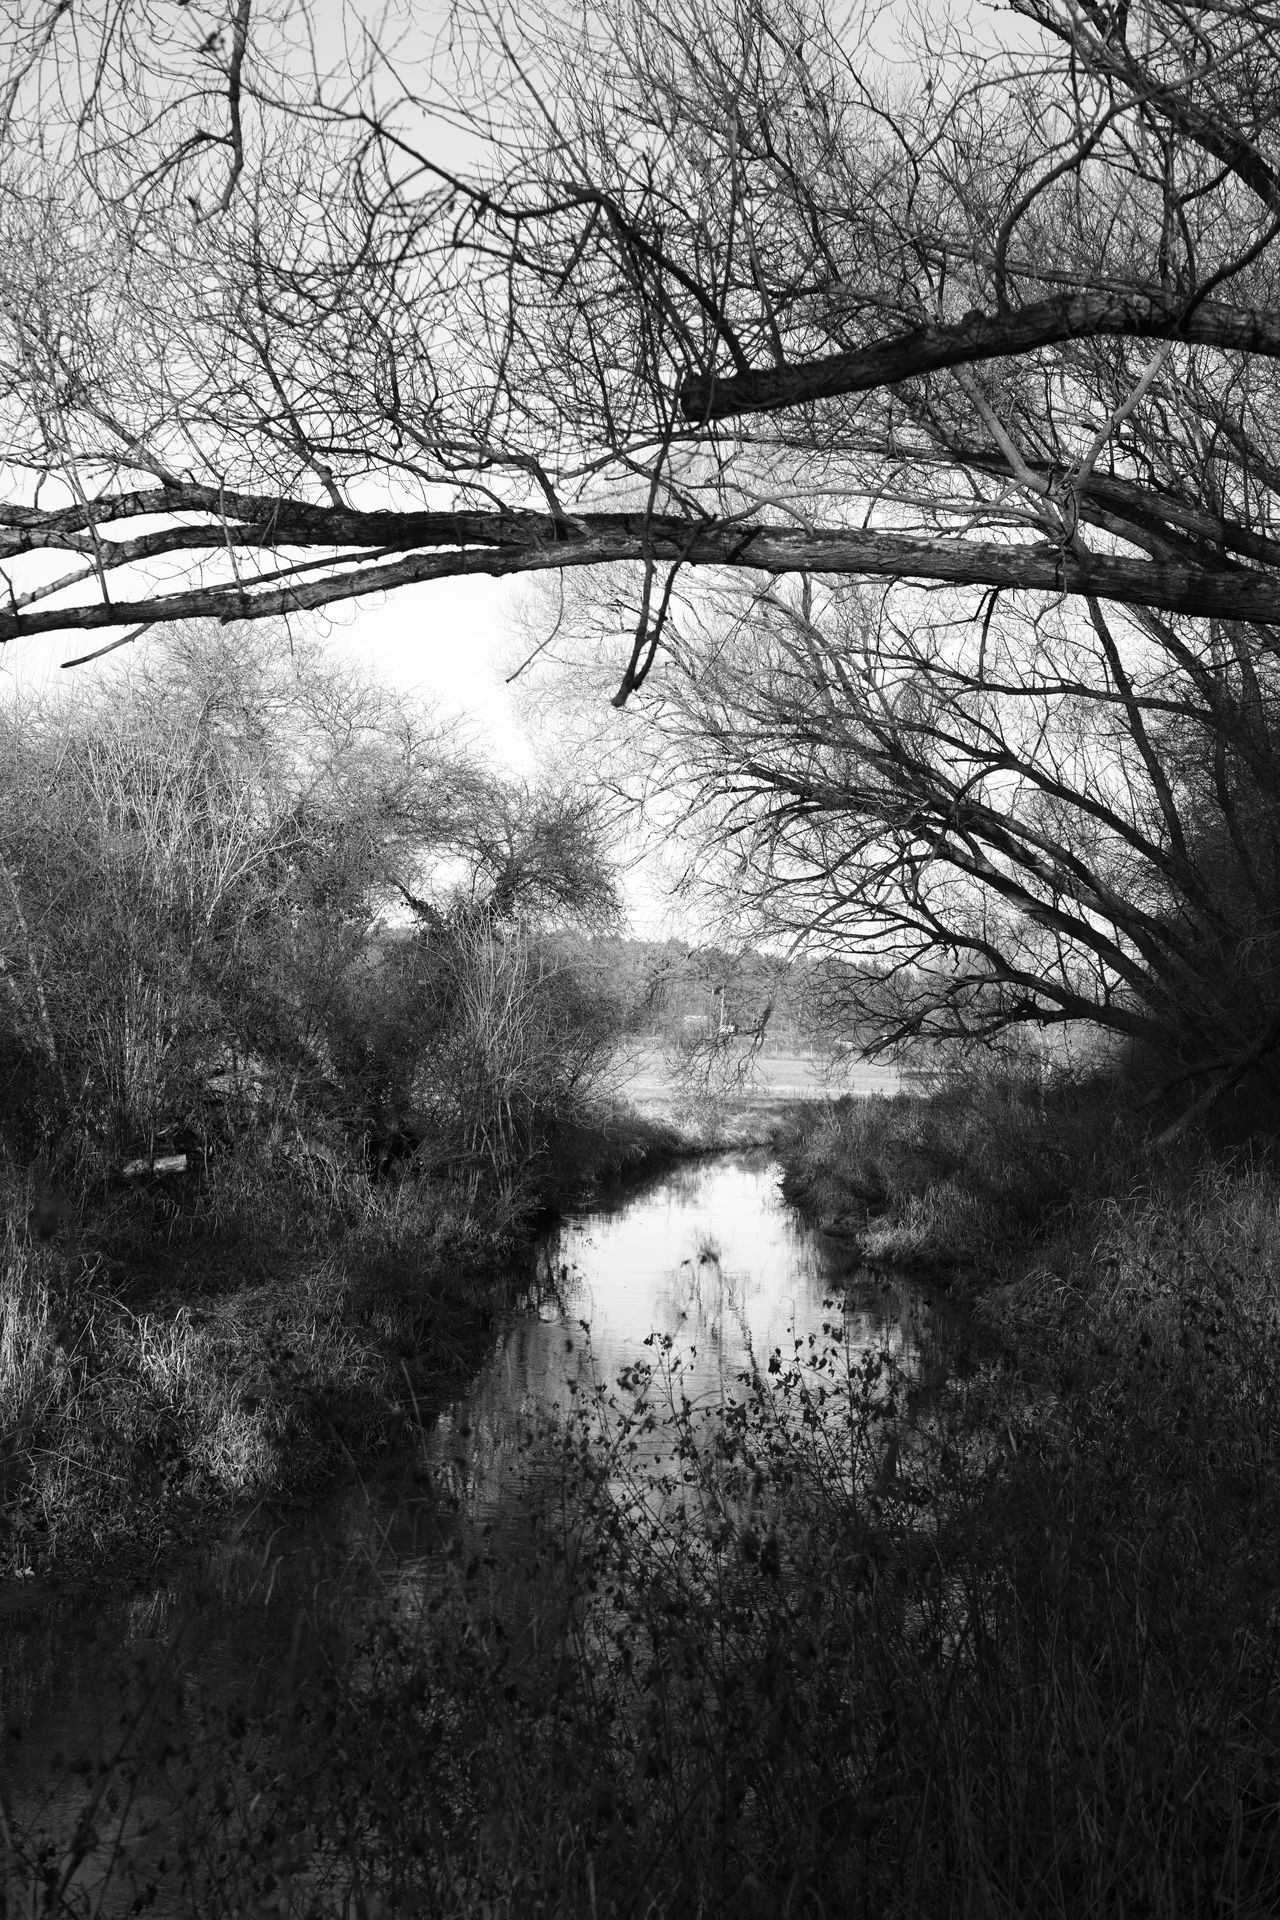 Schwarzbach Bare Tree Beauty In Nature Black & White Black And White Blackandwhite Photography Branch Day Grass Growth Nature No People Non-urban Scene Outdoors Reflection River Scenics Sky Tranquil Scene Tranquility Tree Water Wilderness Willow Tree